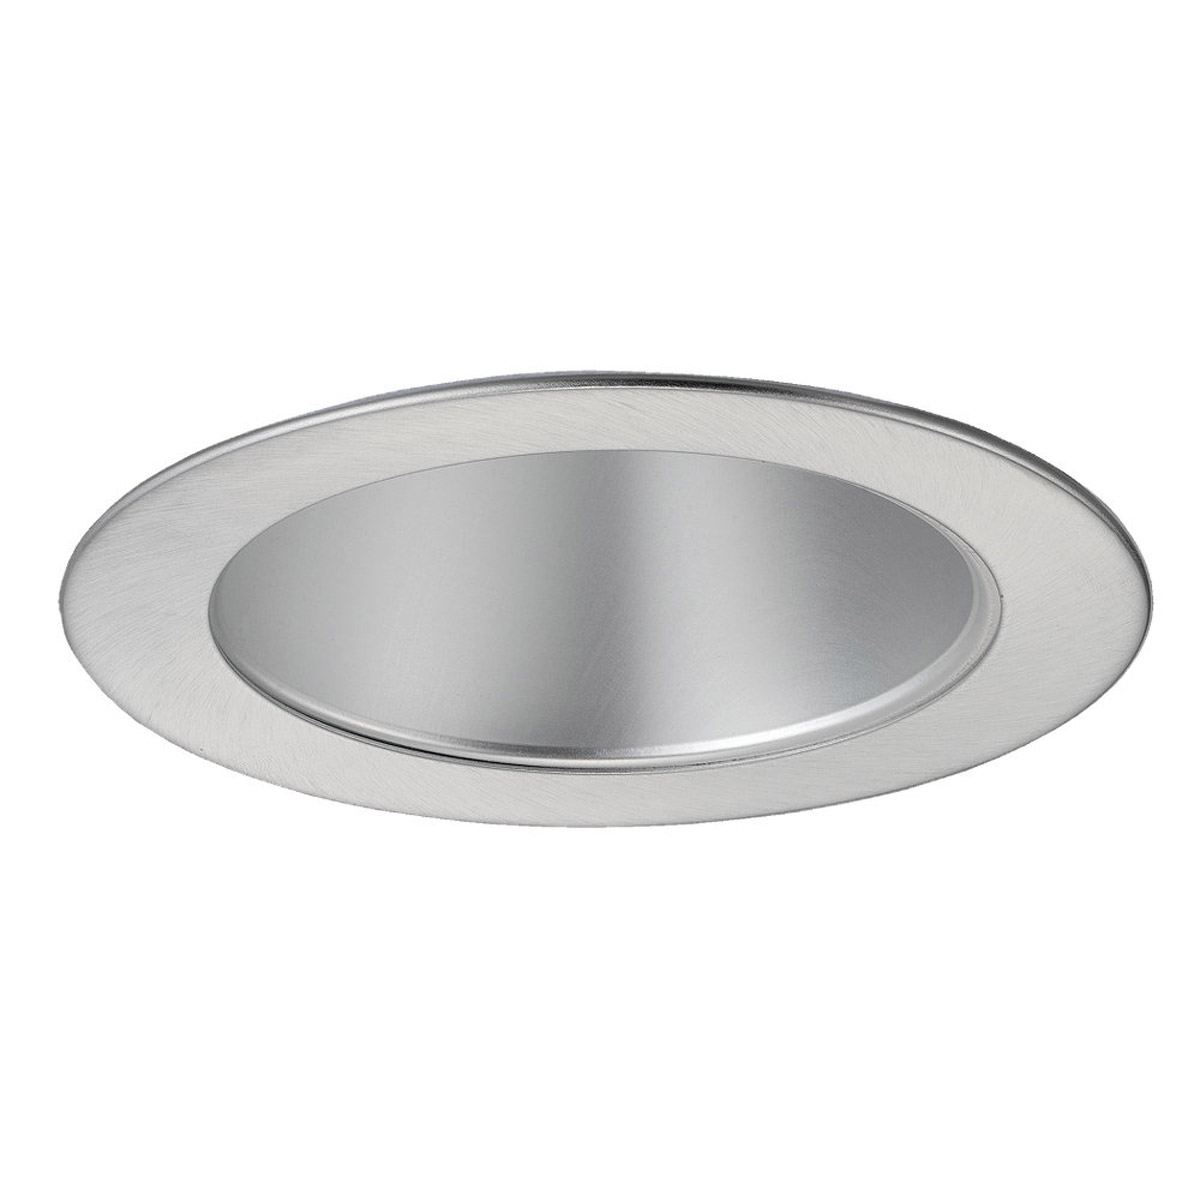 Sea Gull Lighting Signature Recessed Trim Only in Satin Nickel 1162AT-849